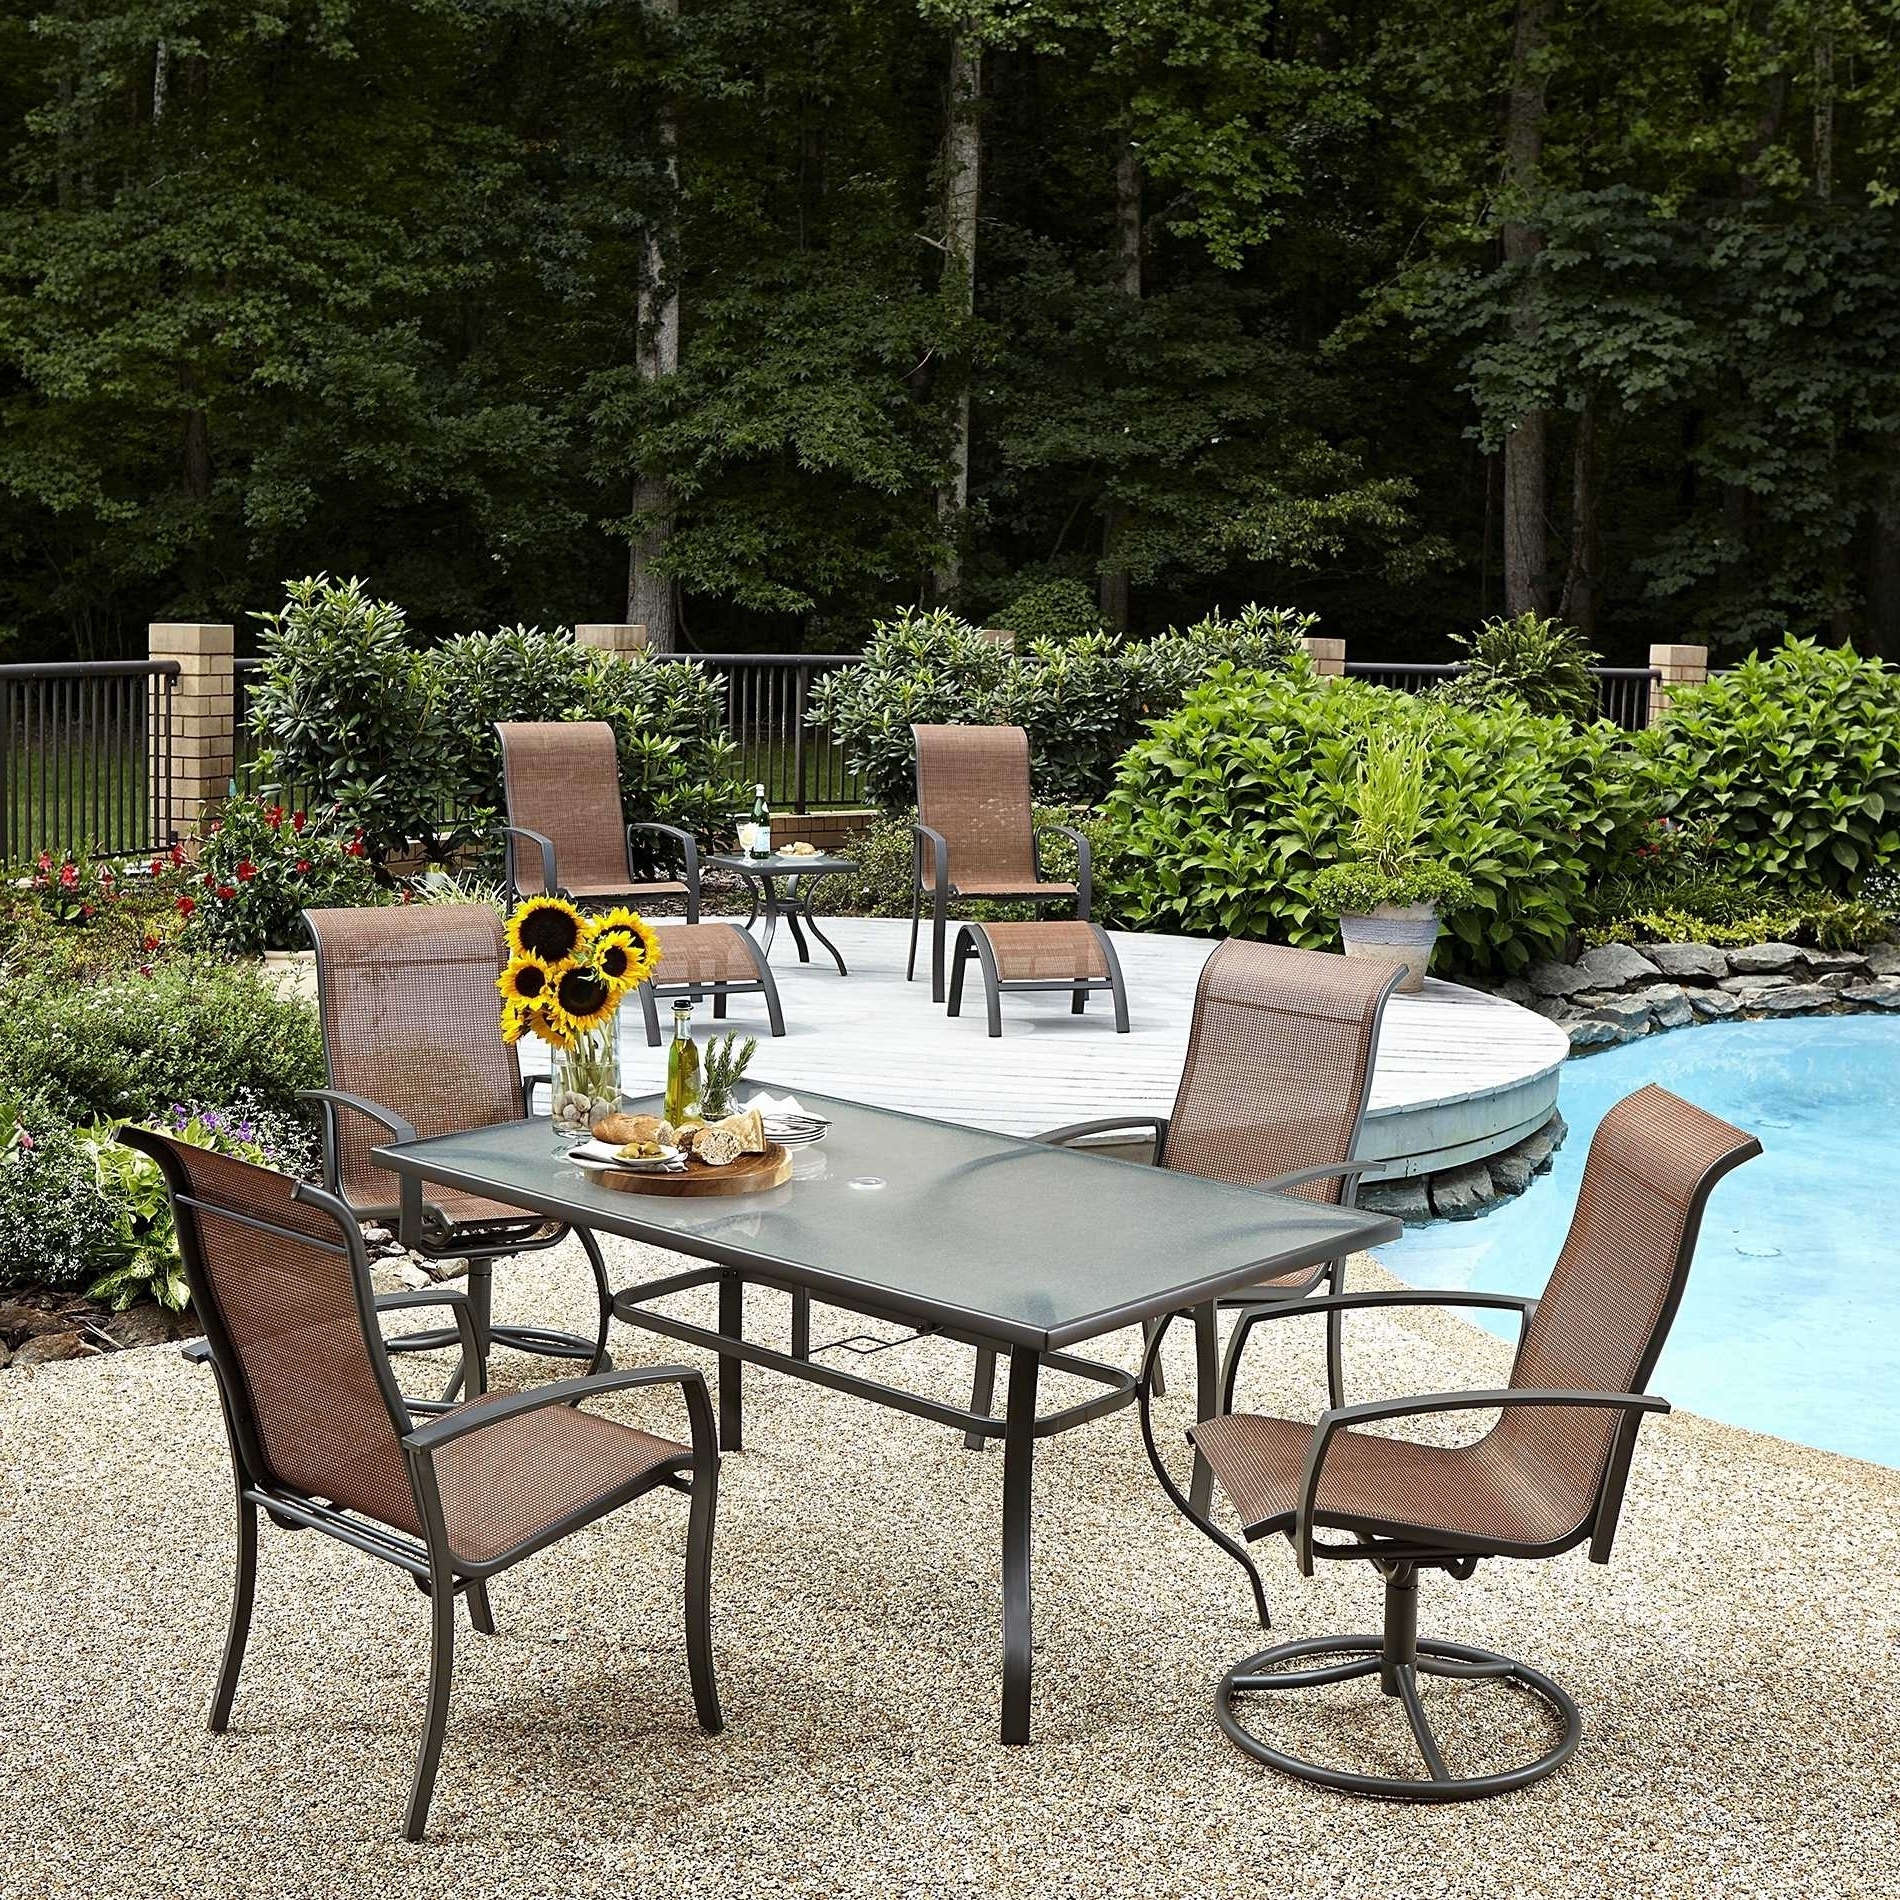 Favorite Patio Conversation Sets Under 200 Regarding Cheap Patio Furniture Sets Inspirations Including Beautiful Under (View 8 of 15)